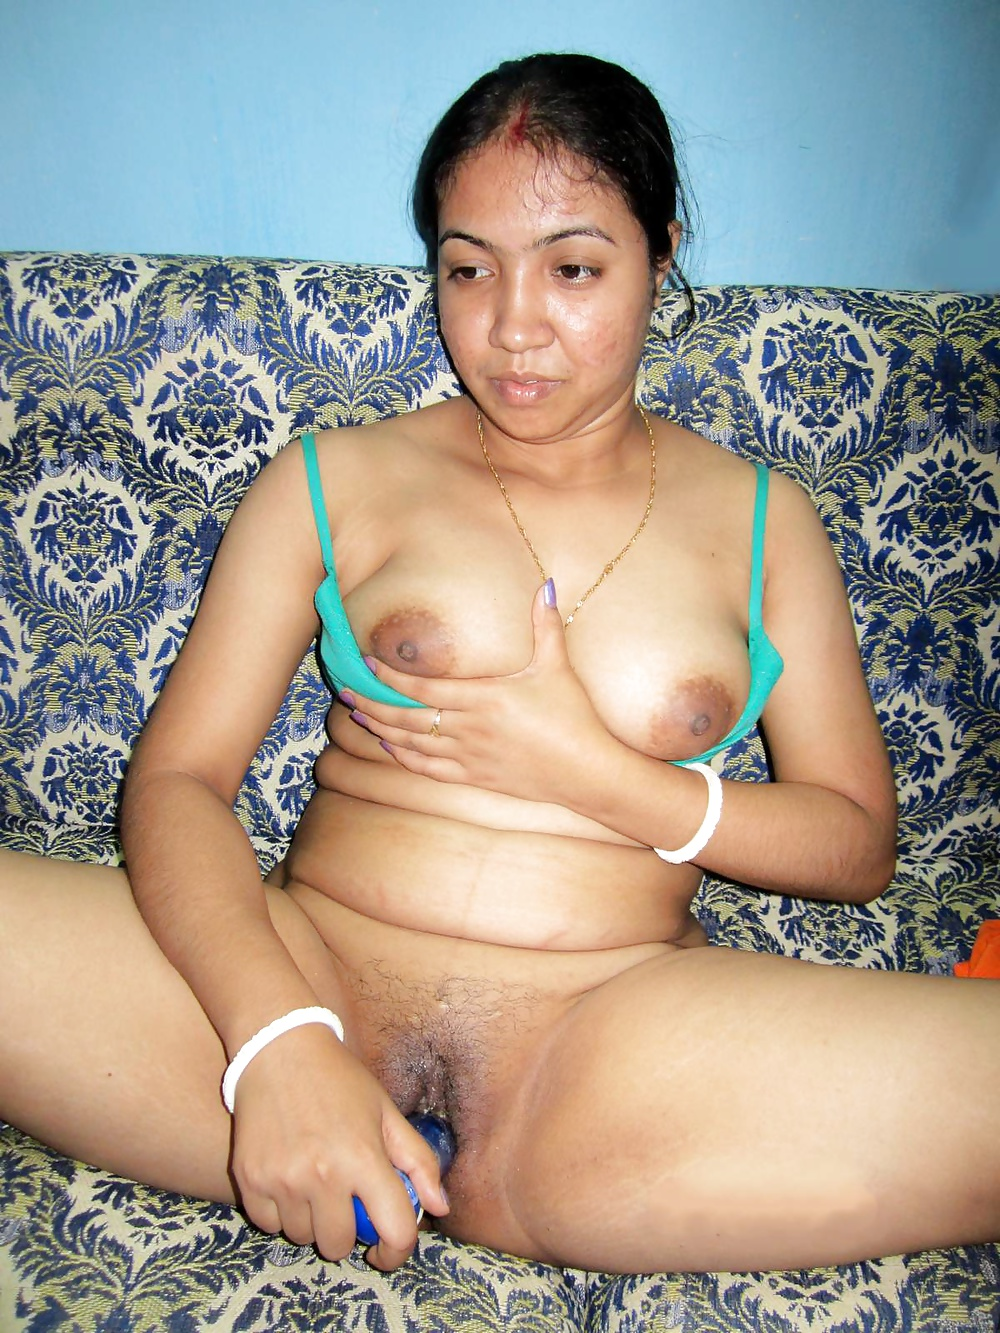 Interesting phrase Naked indian babe masturbating